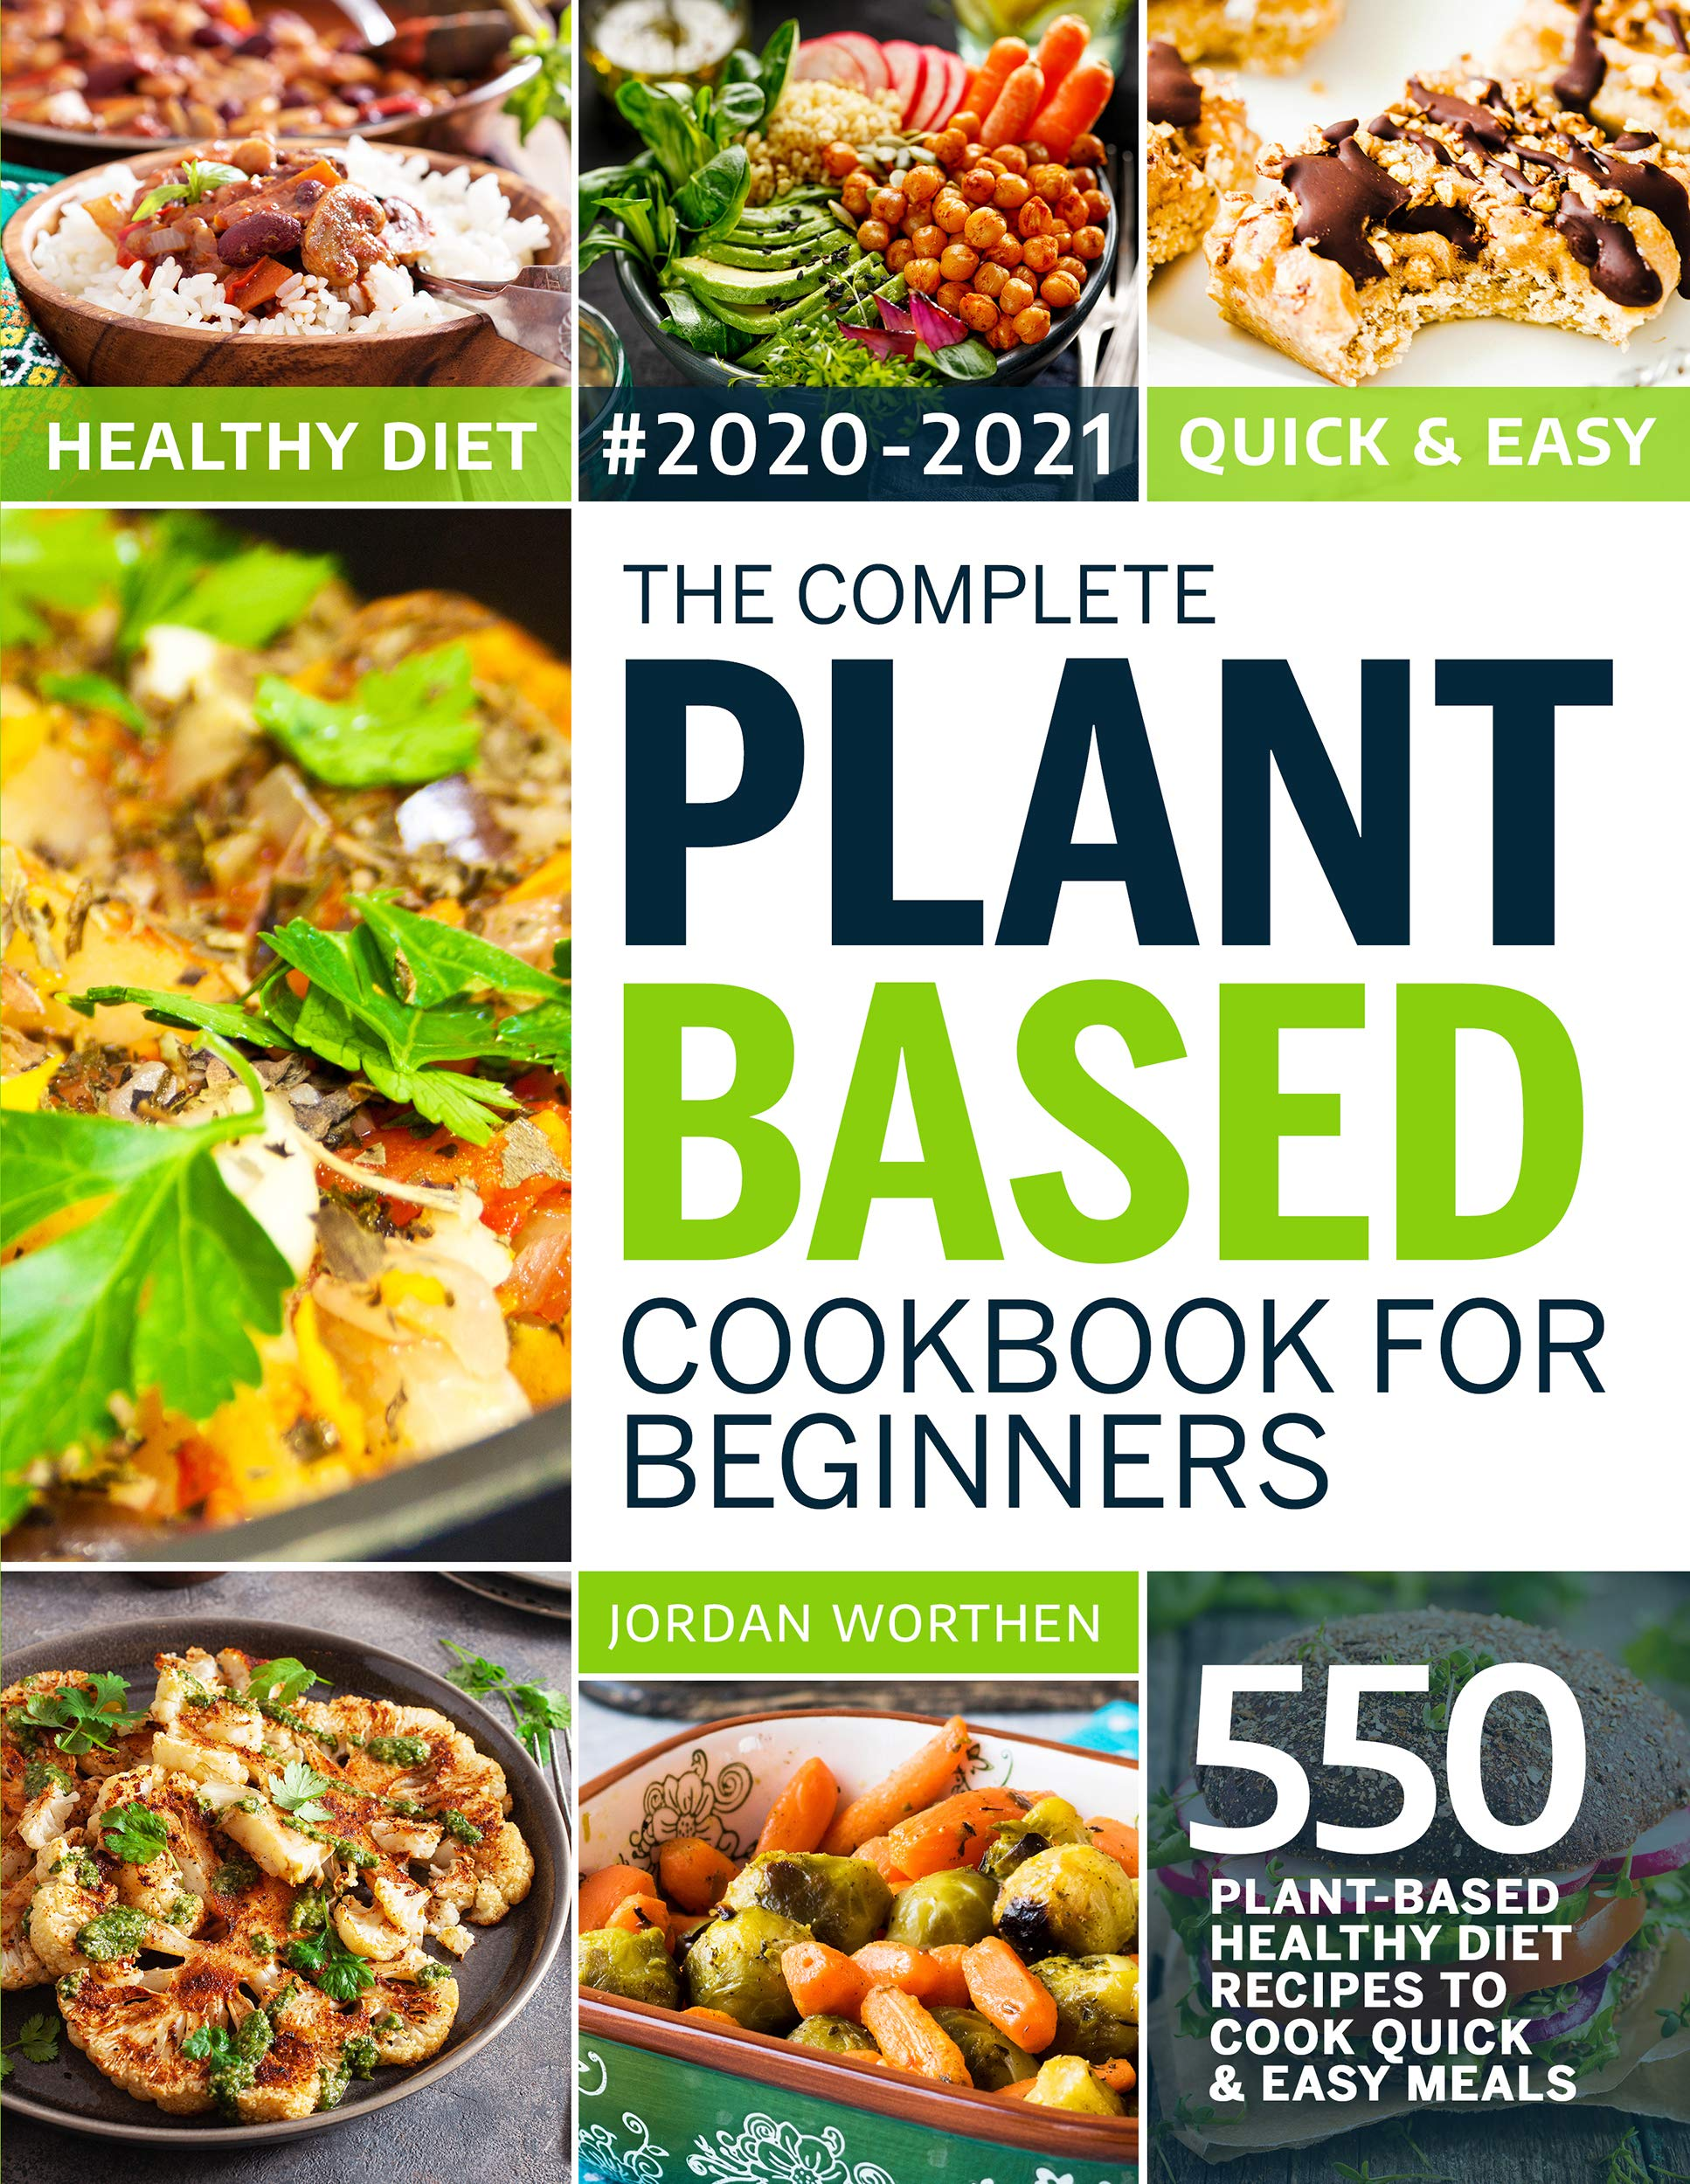 Image OfThe Complete Plant Based Cookbook For Beginners: 550 Plant-Based Healthy Diet Recipes To Cook Quick & Easy Meals (English ...